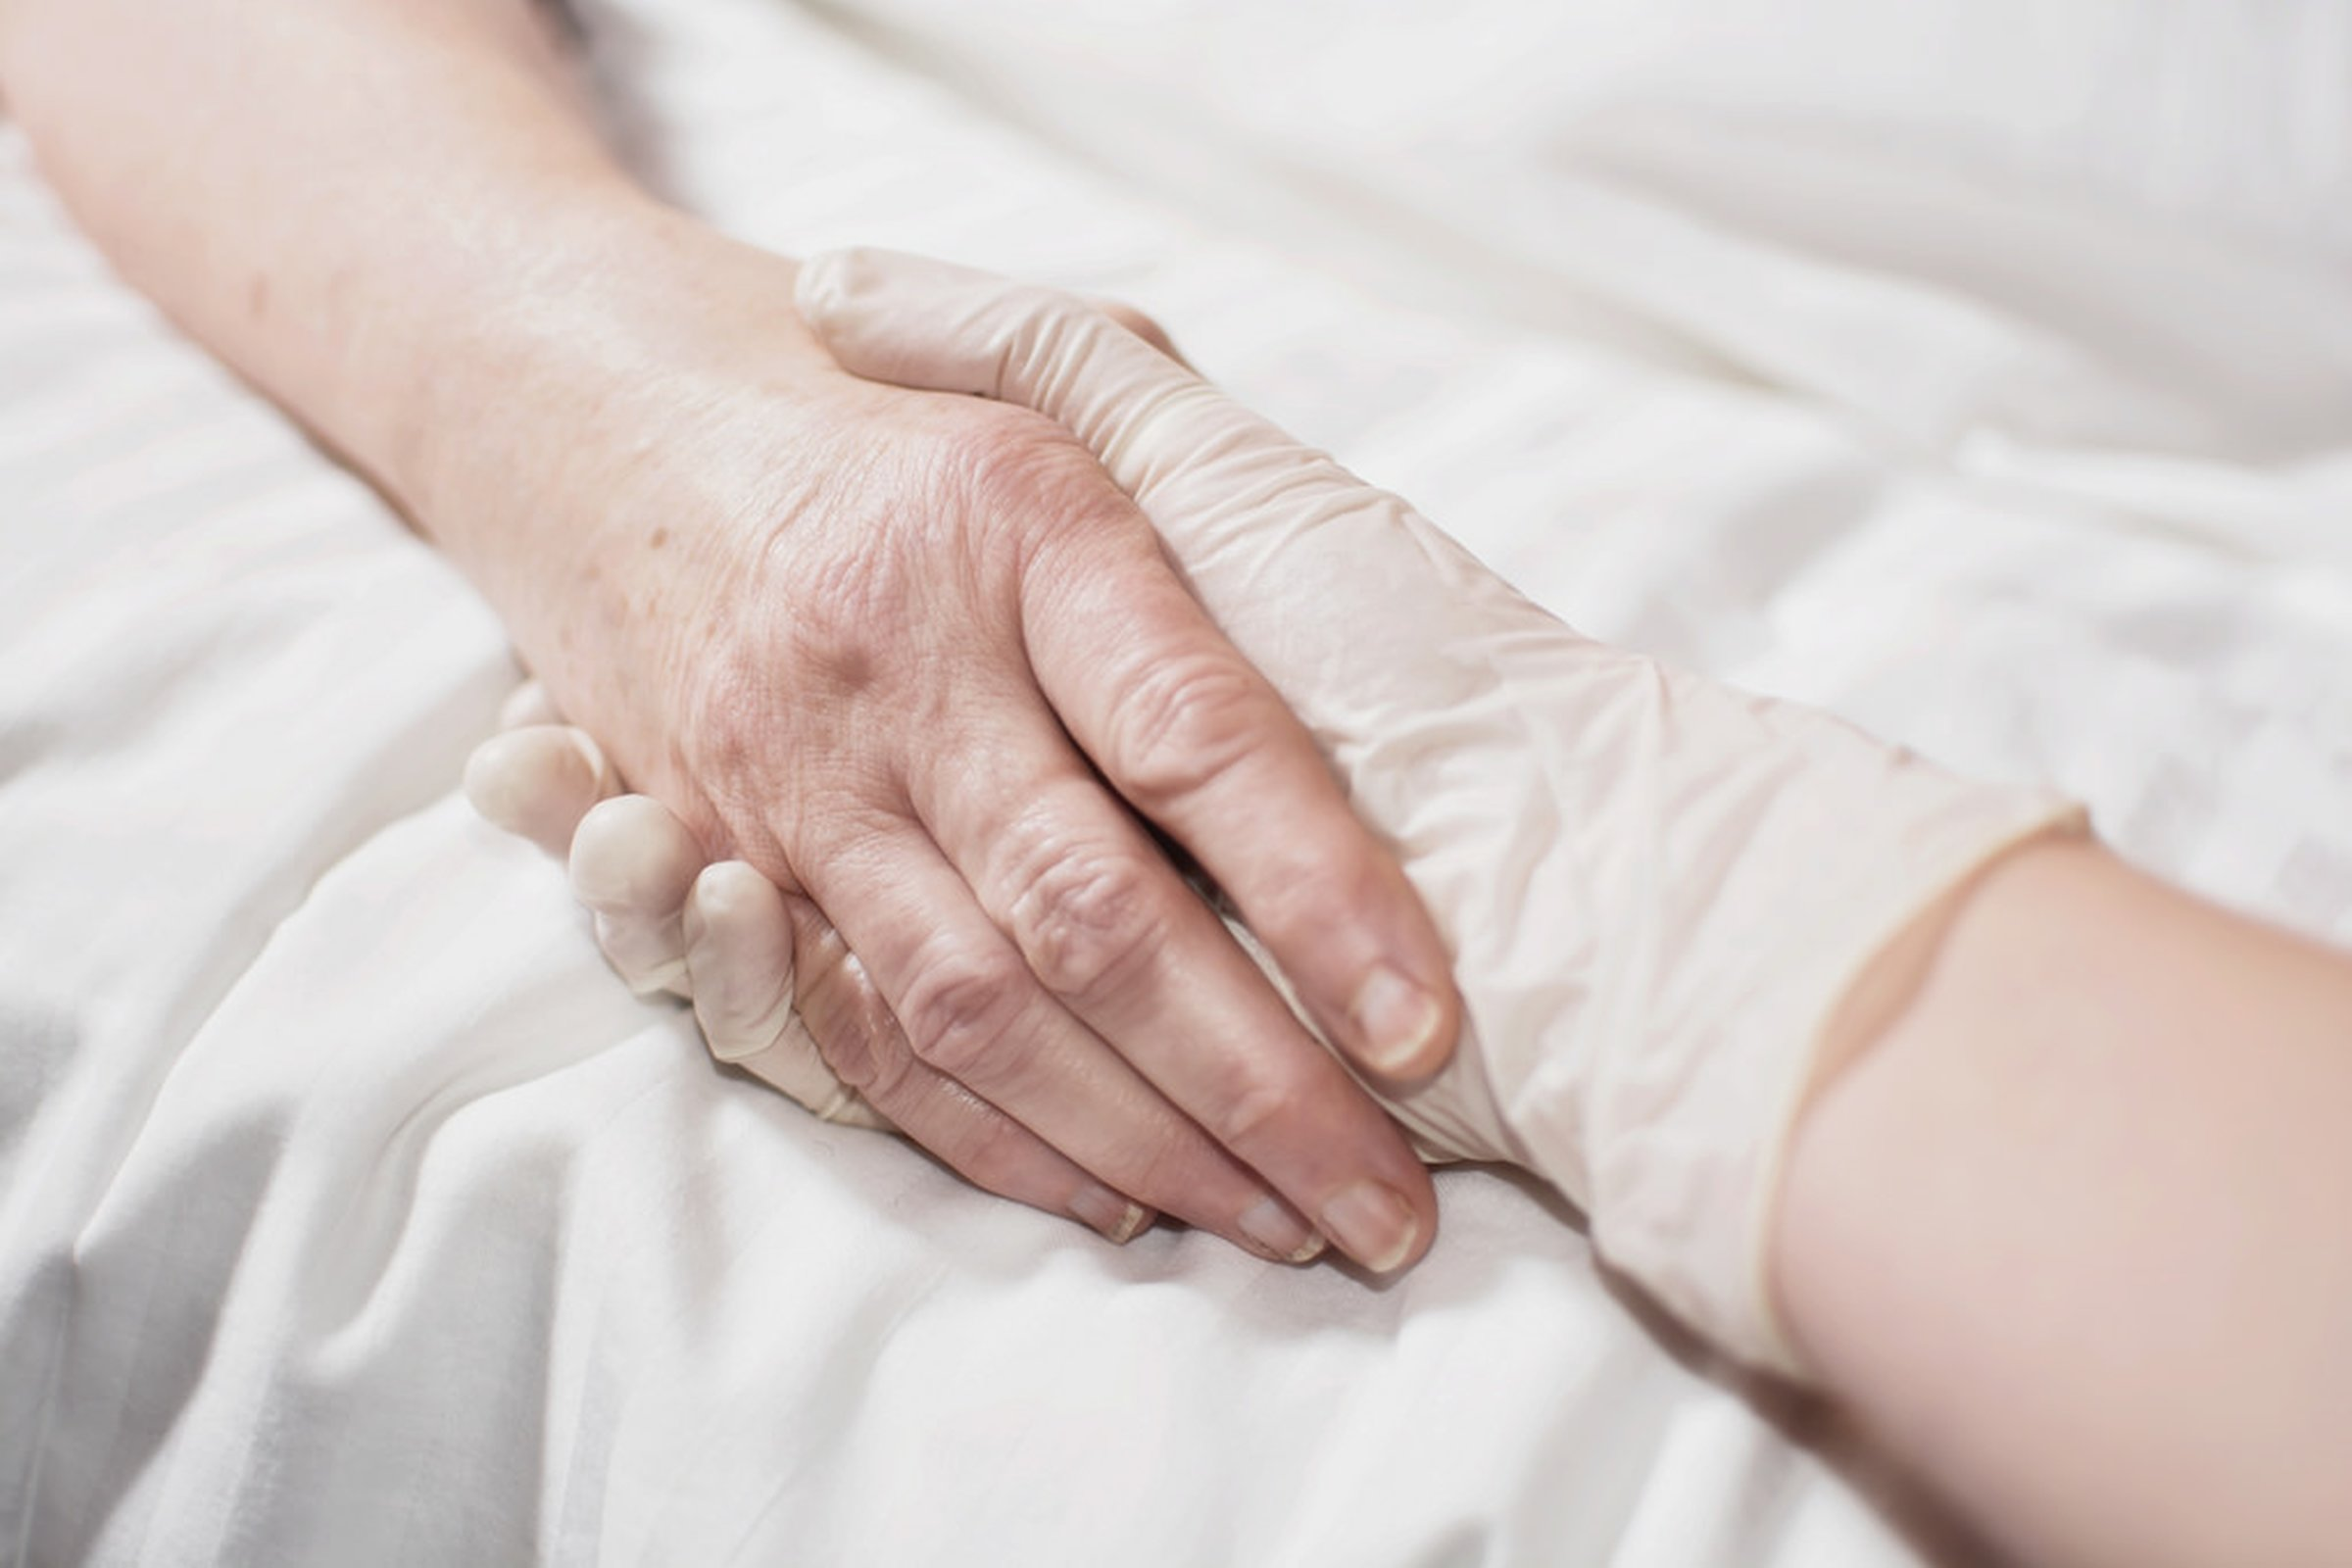 BREAKING: Voluntary Assisted Dying laws have passed